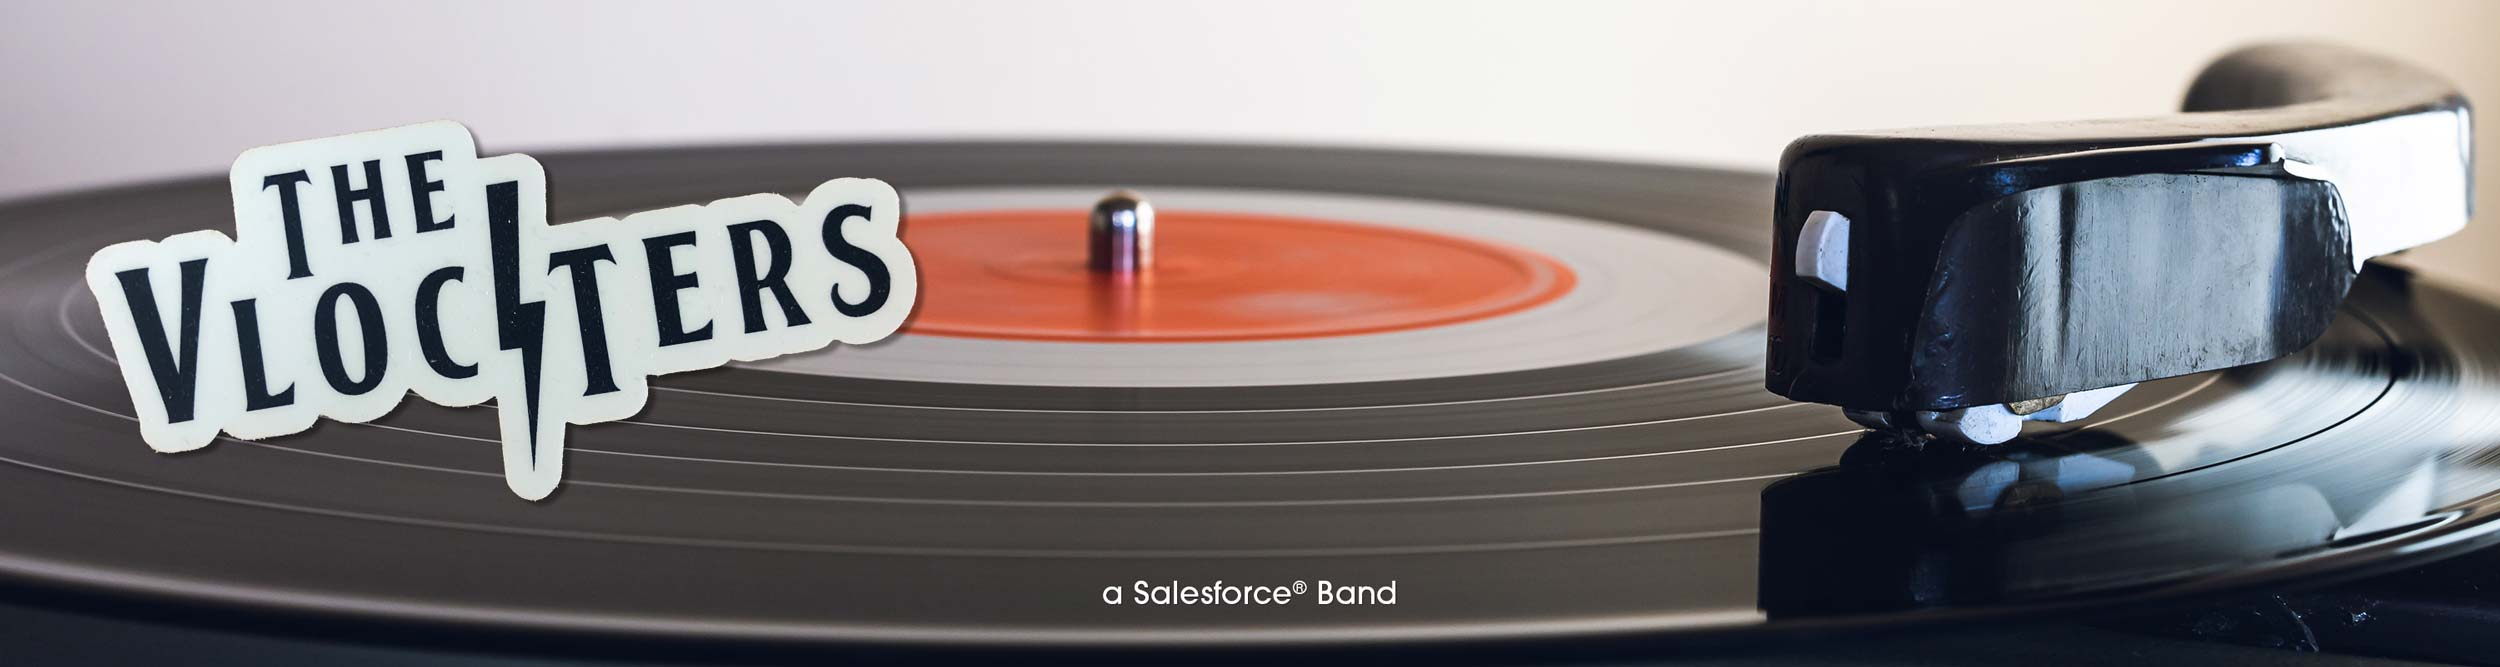 The Vlociters, a Salesforce Band